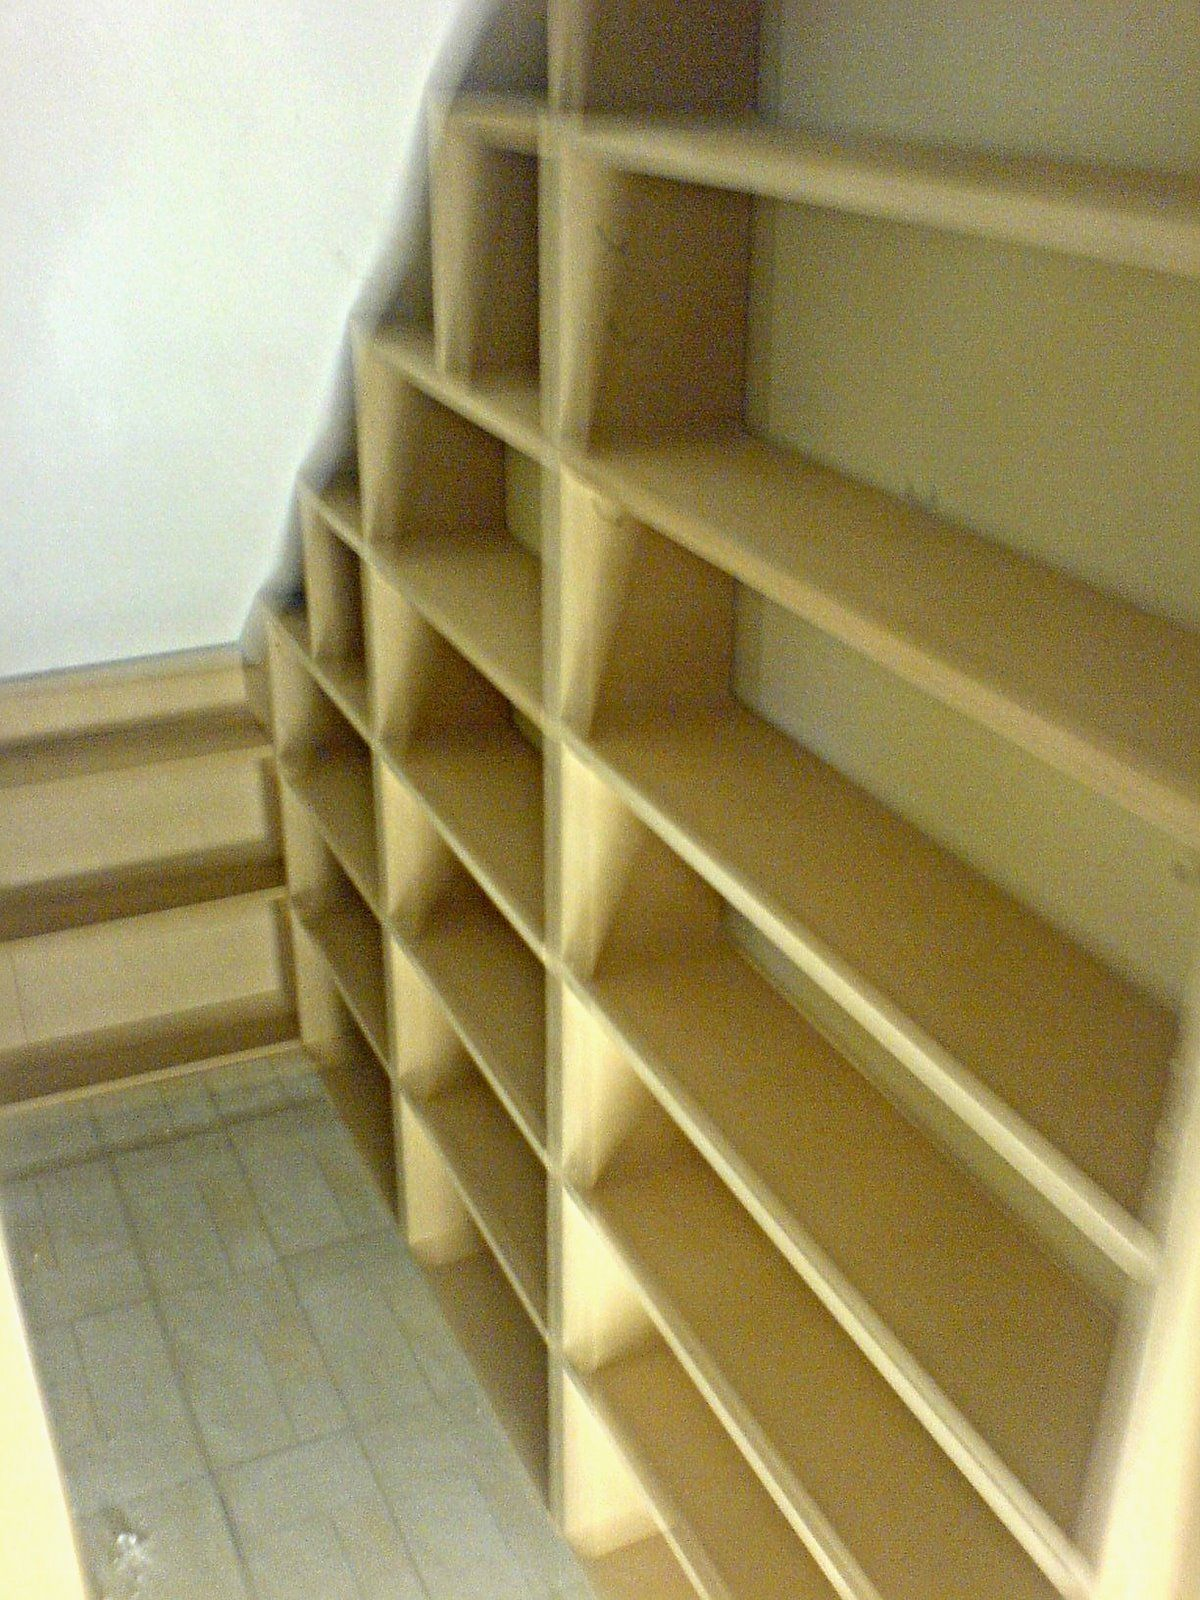 under stairs storage cupboard m cupboard storage. Black Bedroom Furniture Sets. Home Design Ideas